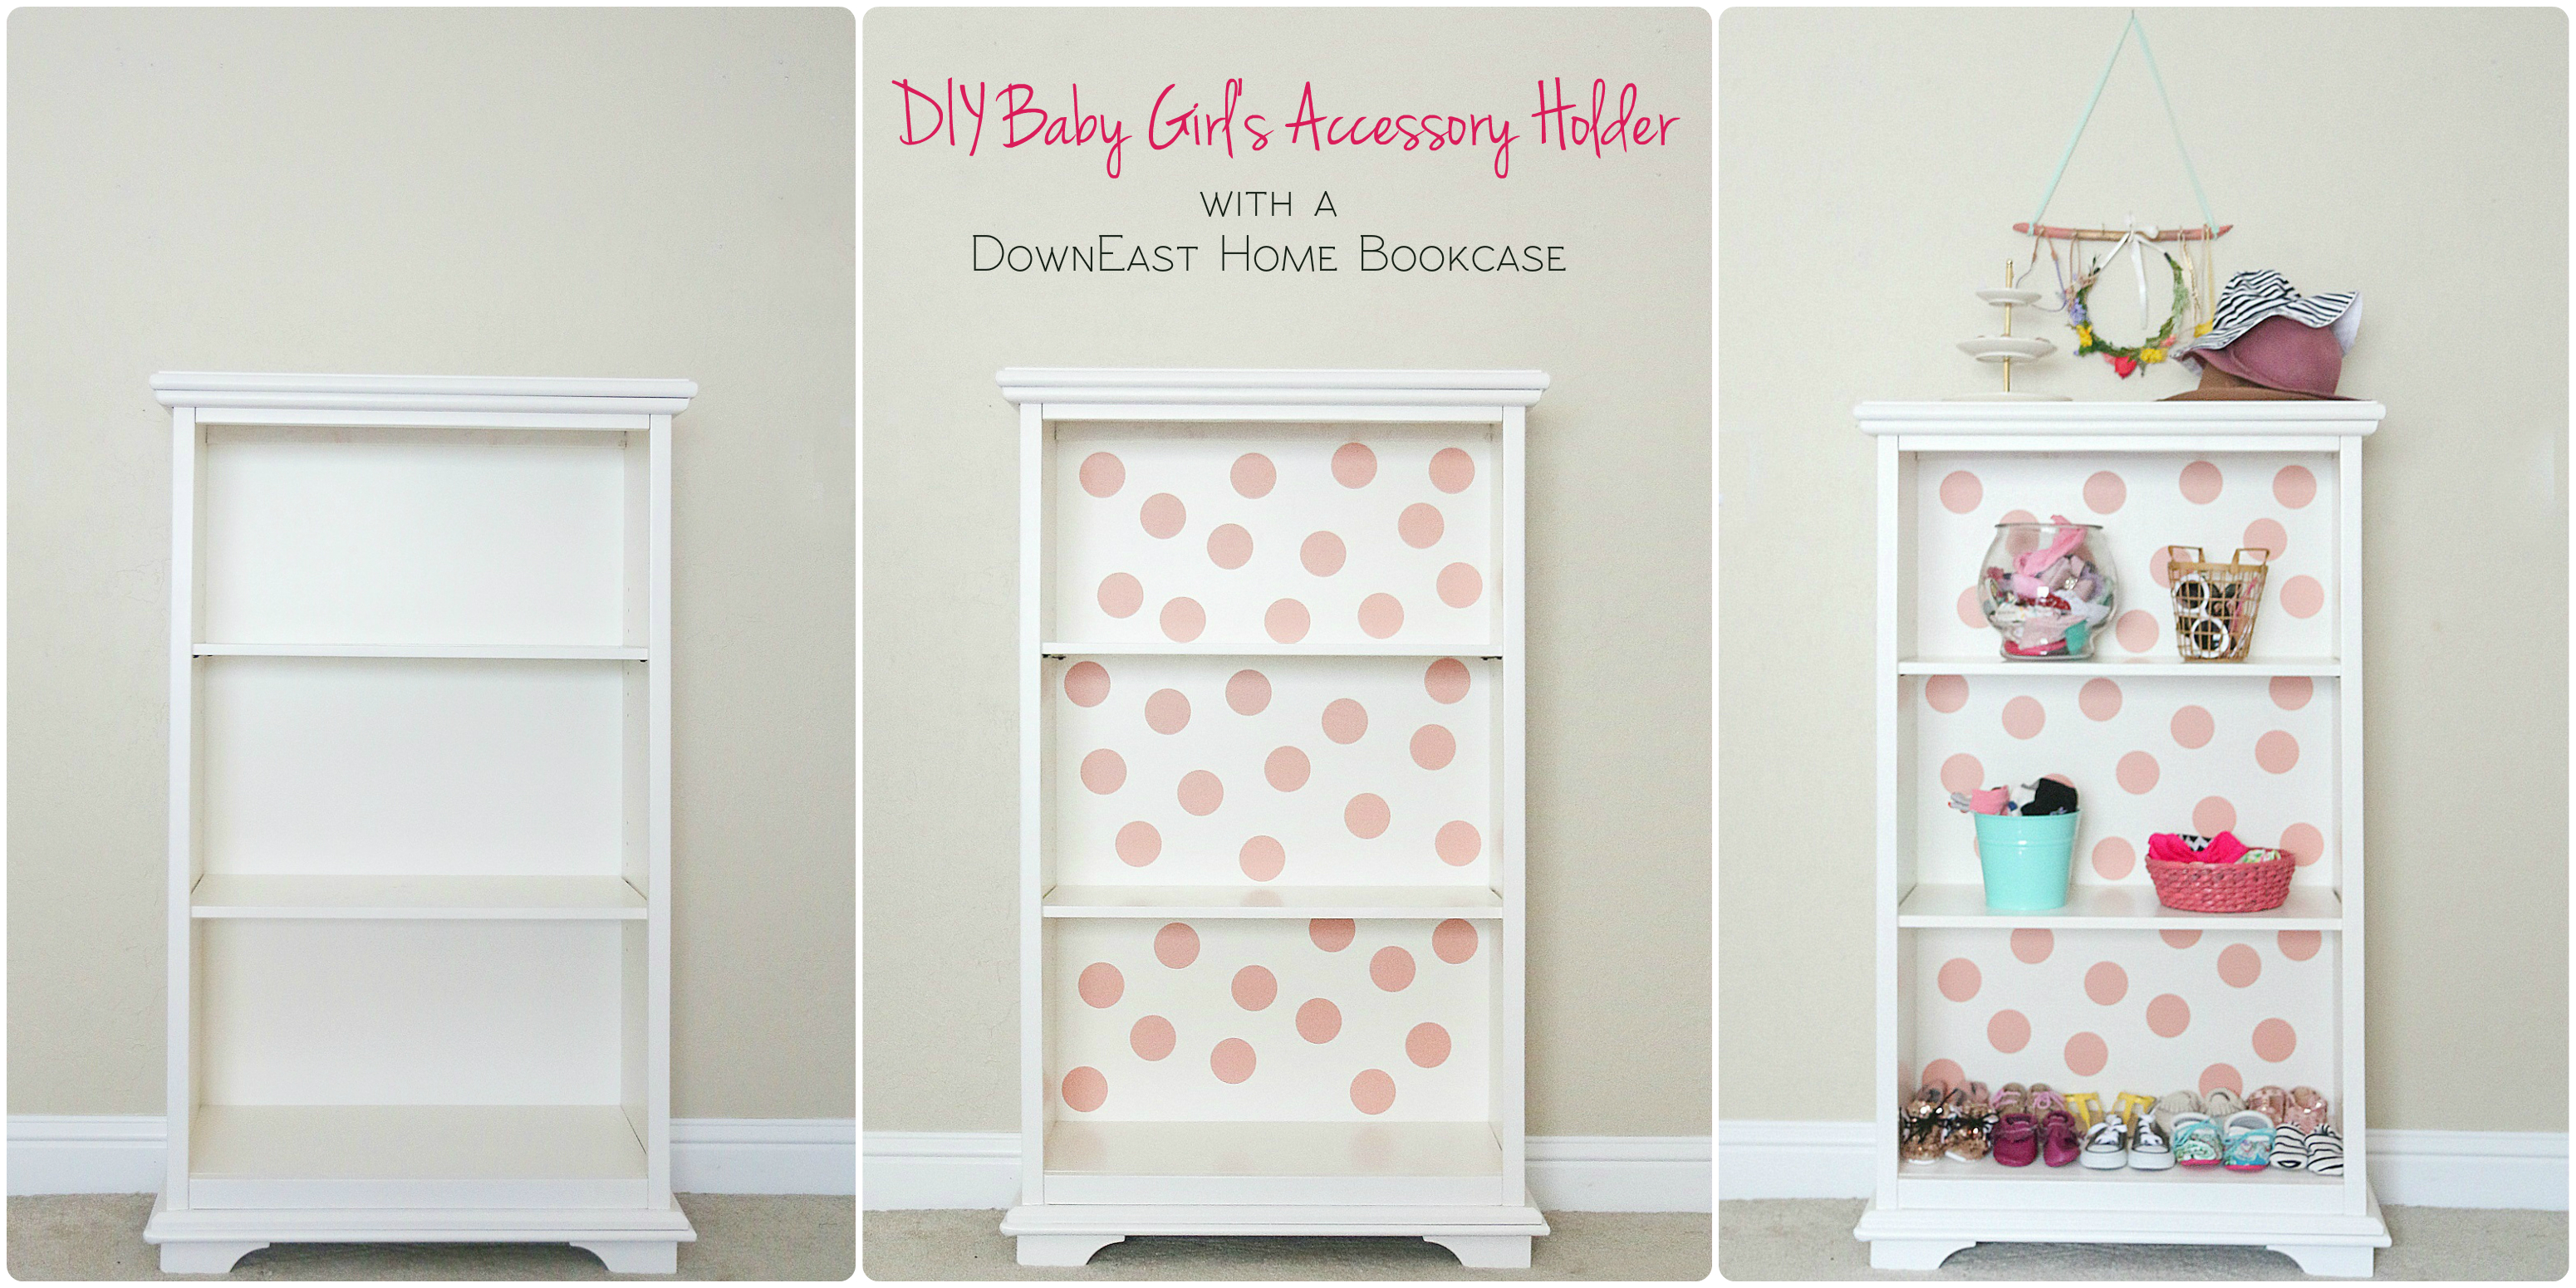 DownEast Home Bookcase turned into DIY Baby Girl's Accessory Holder